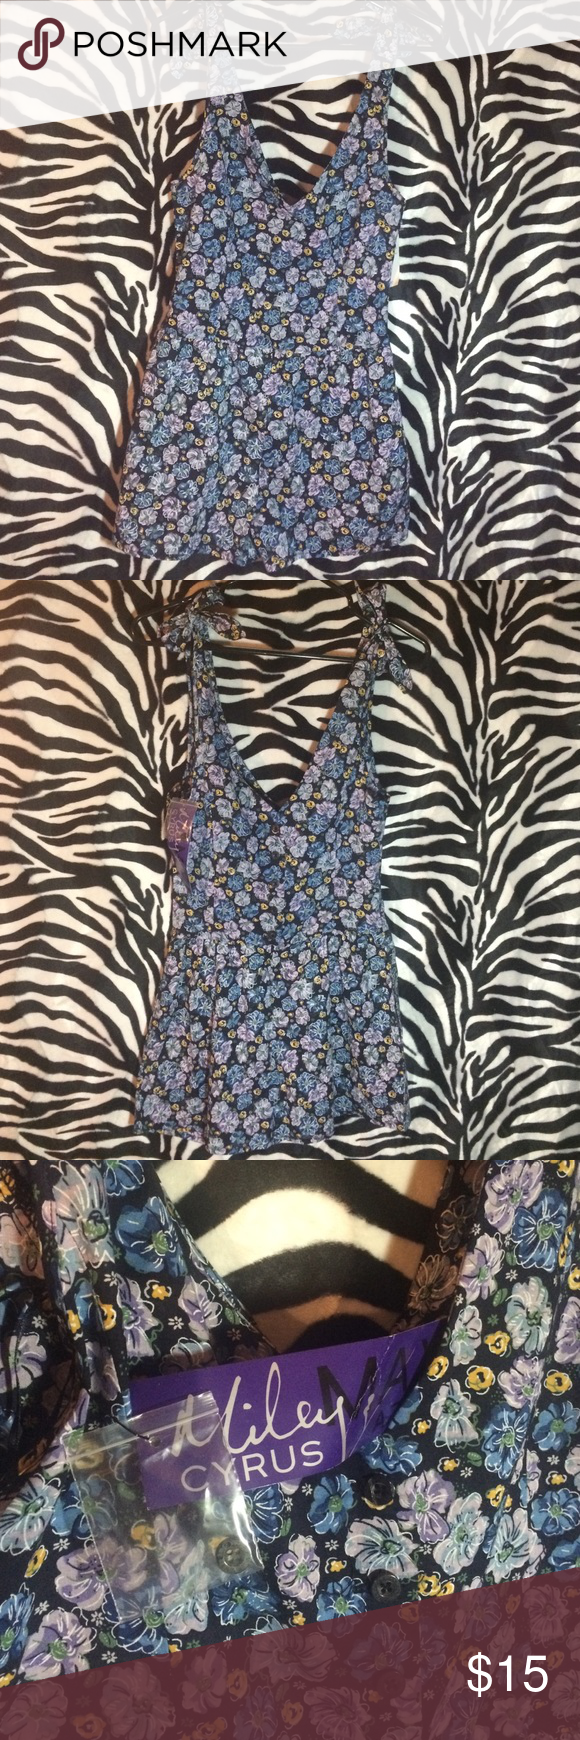 Miley romper Super cute.. Floral print, shoulder ties are adjustable. NWT Miley cyrus Shorts